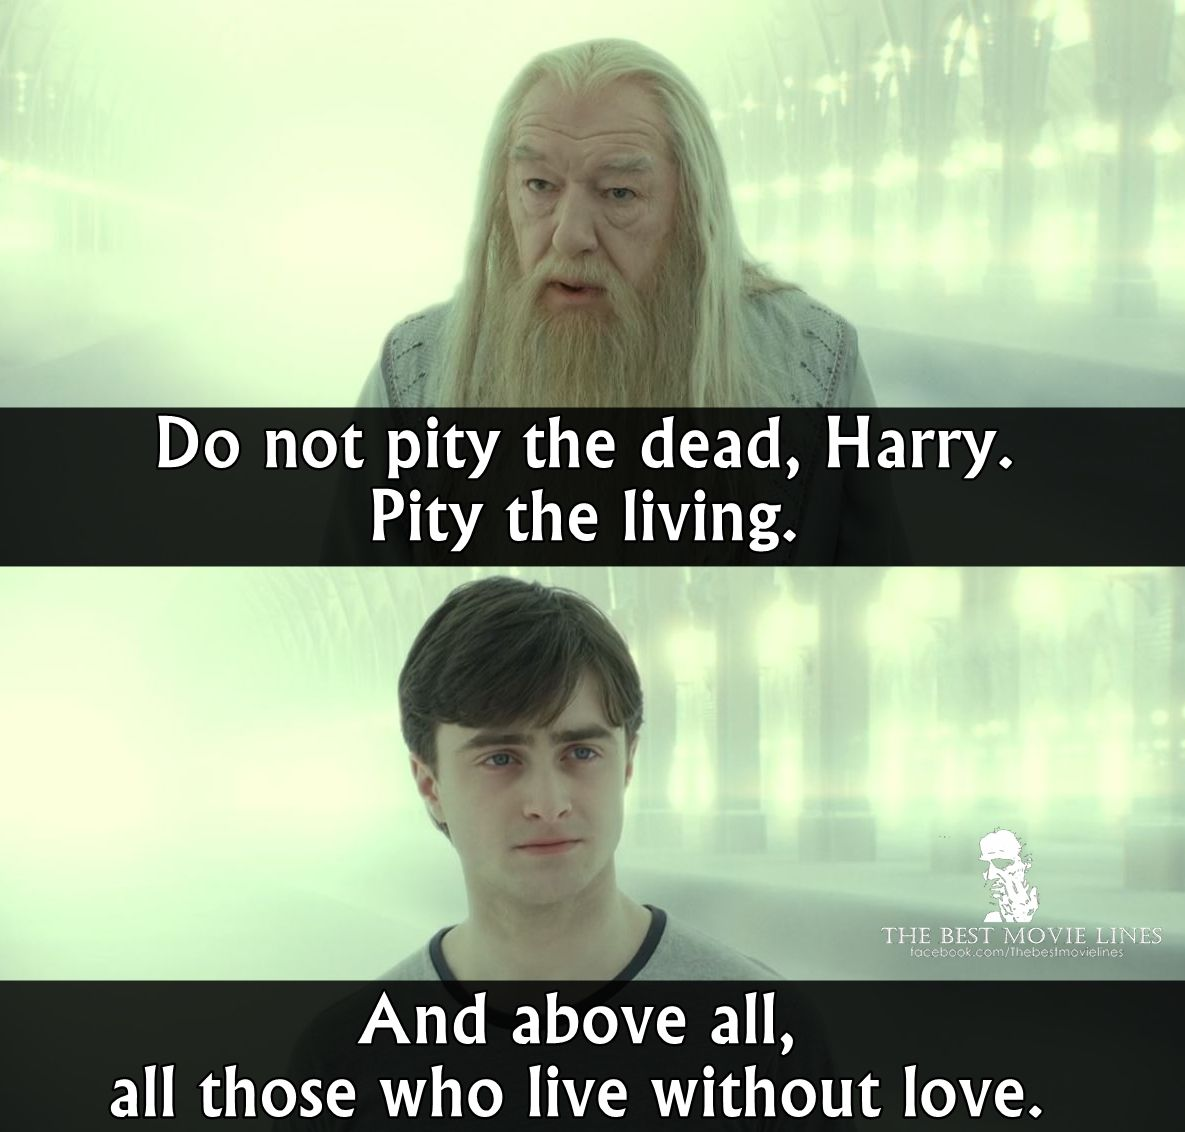 Harry Potter And The Deathly Hallows Part 2 2012 Harry Potter Dialogues Harry Potter Quotes Harry Potter Series